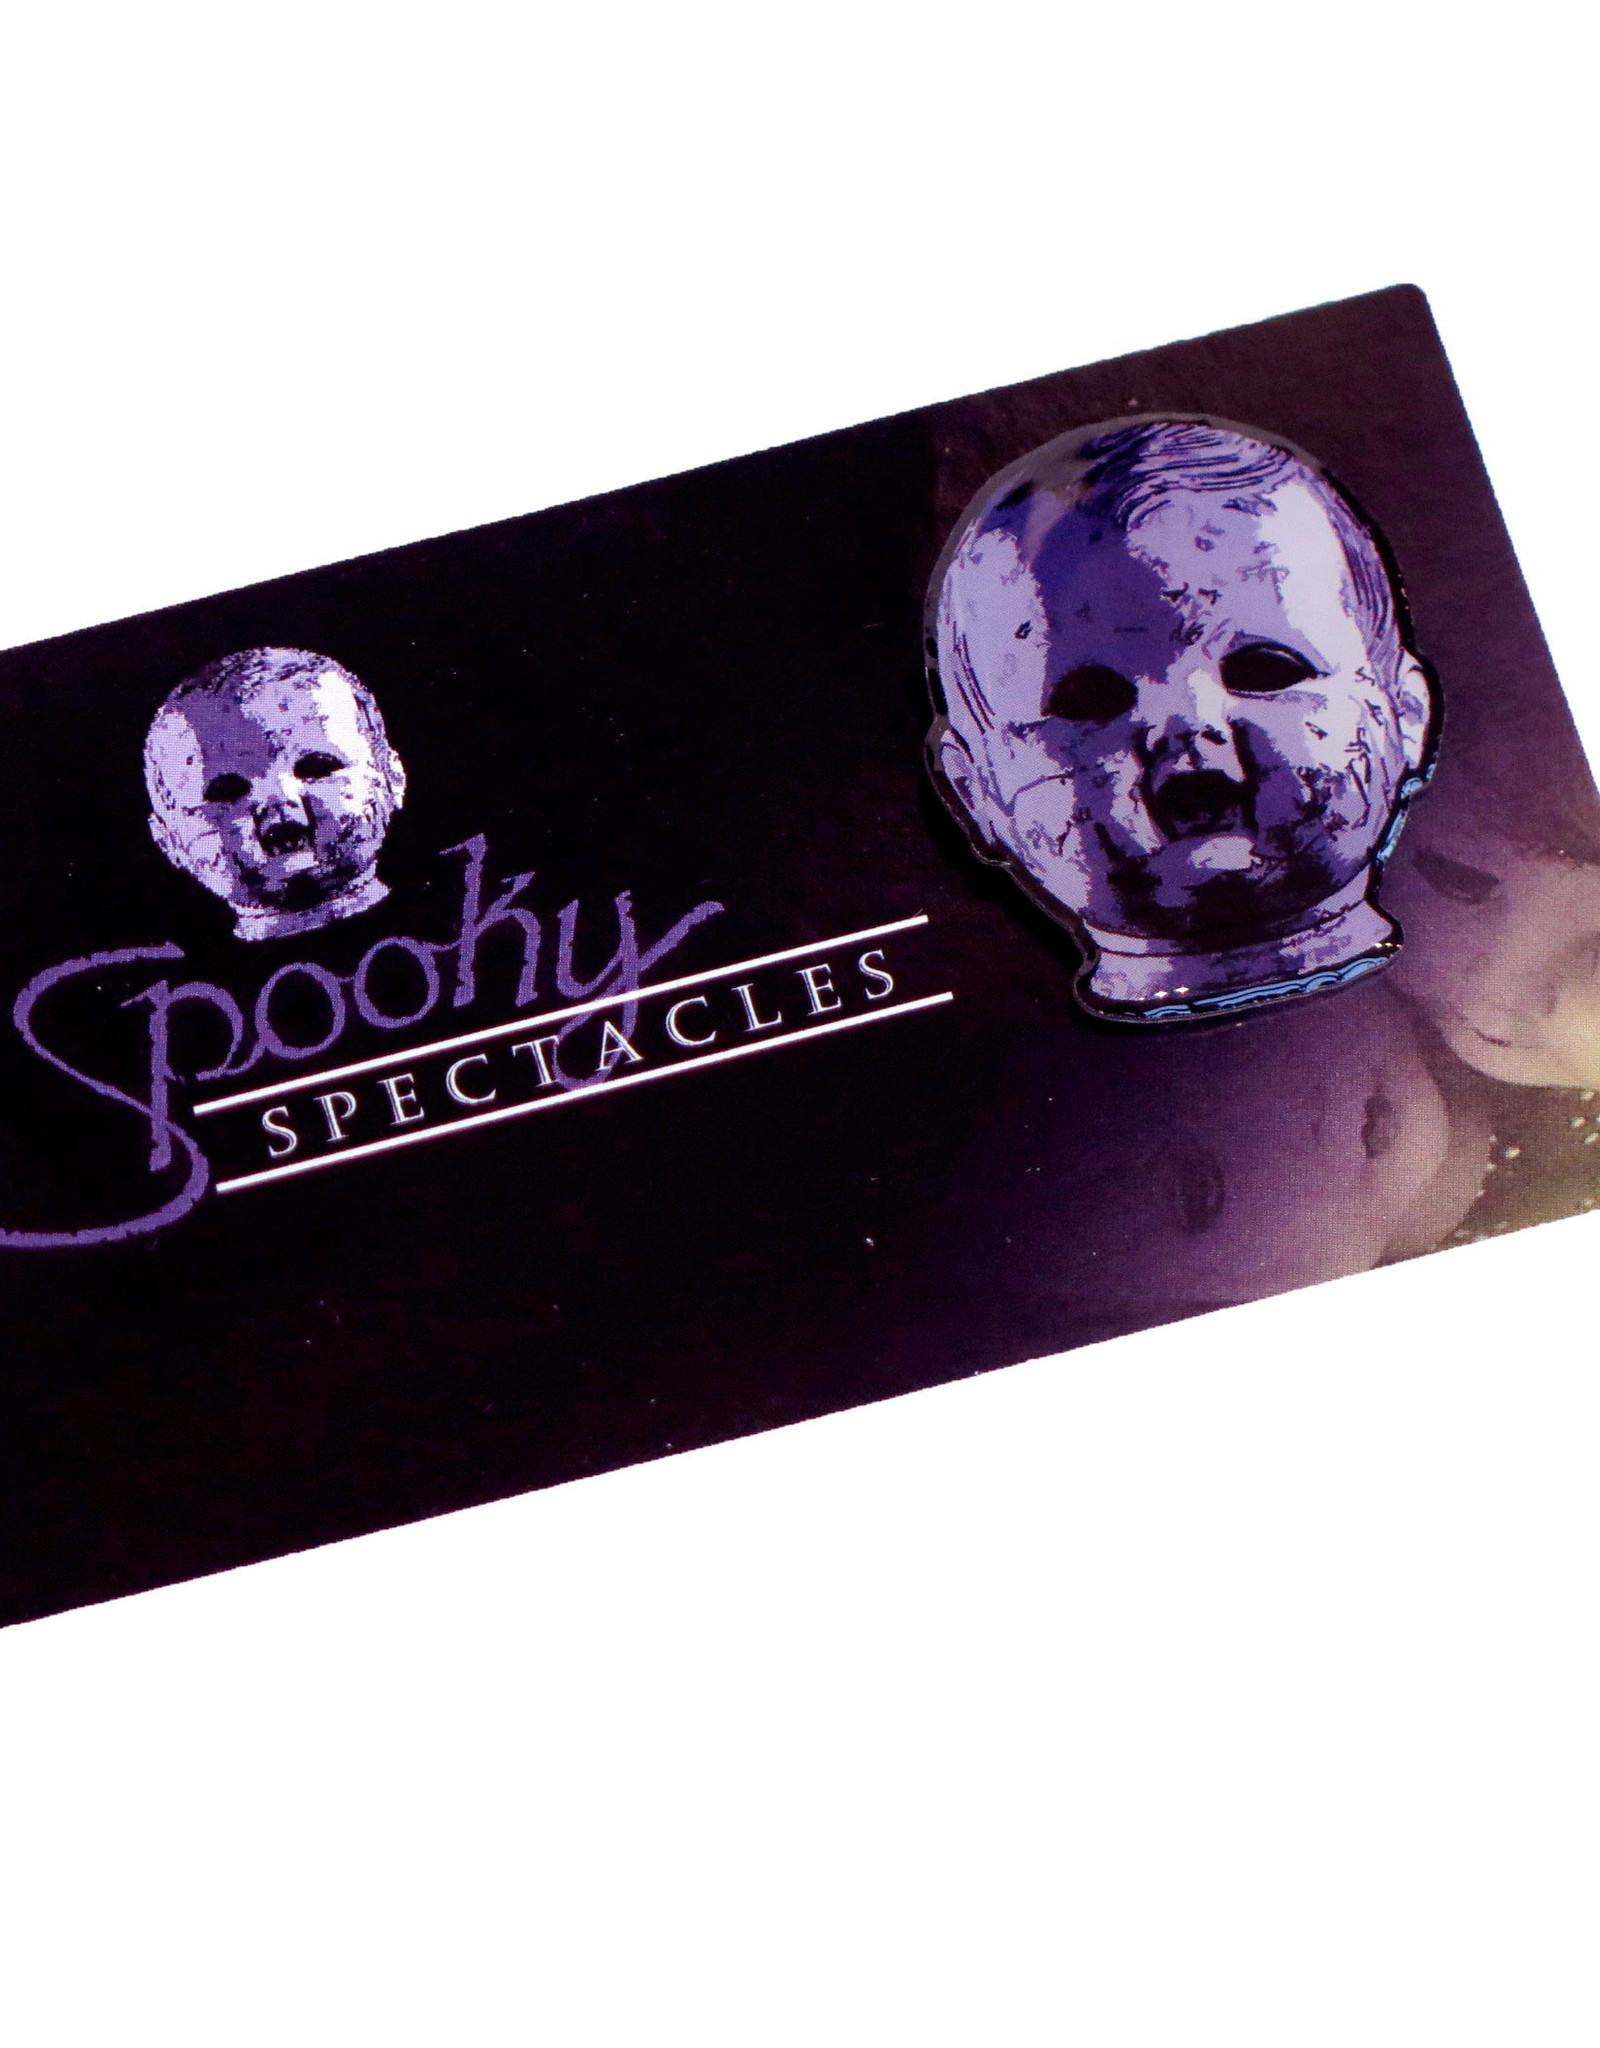 Doll Head pin by Spooky Spectacles